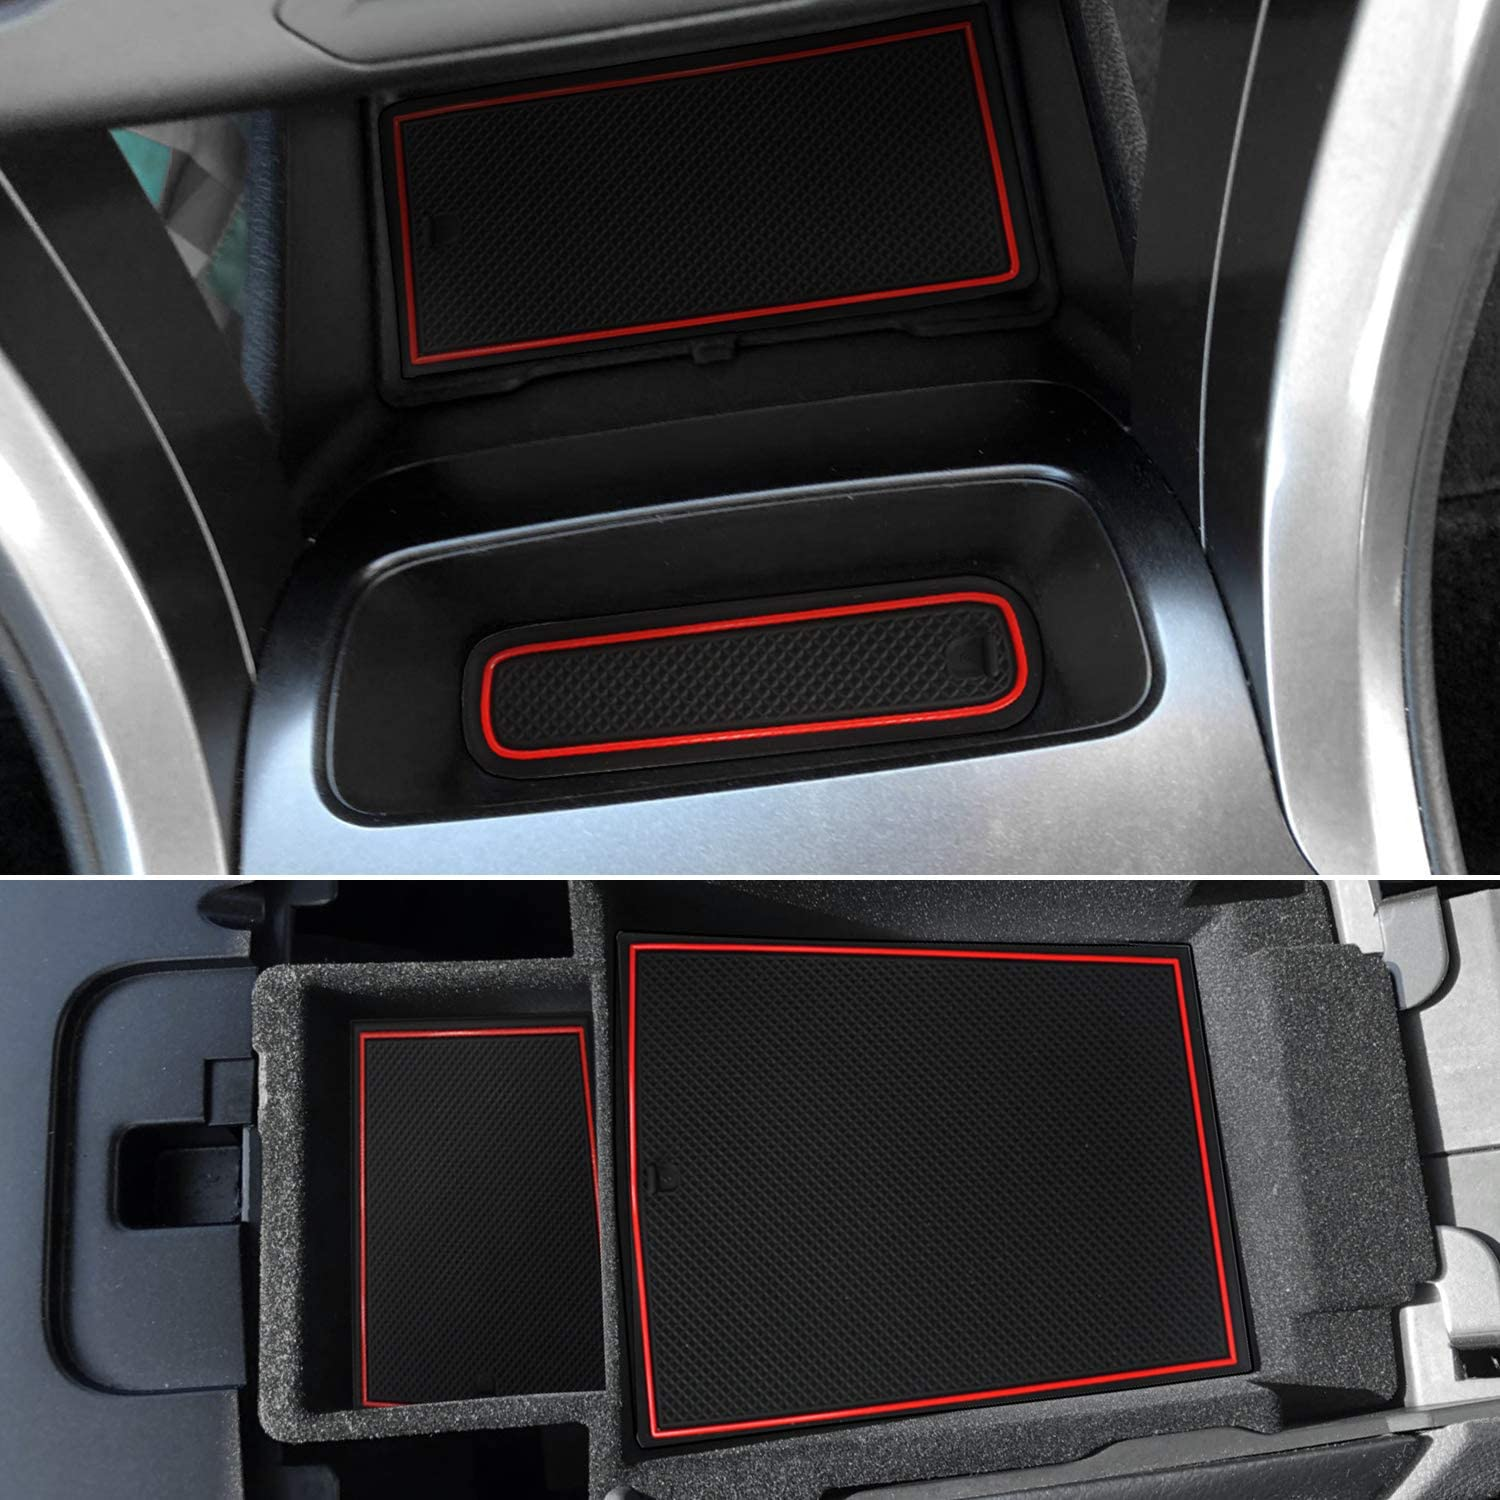 Red, Upgrade Pack of 16 Auovo Anti Dust Door Mats Custom Fit Door Cup Center Console Liners Accessories for Ford Fusion 2019 2020 2018 2017